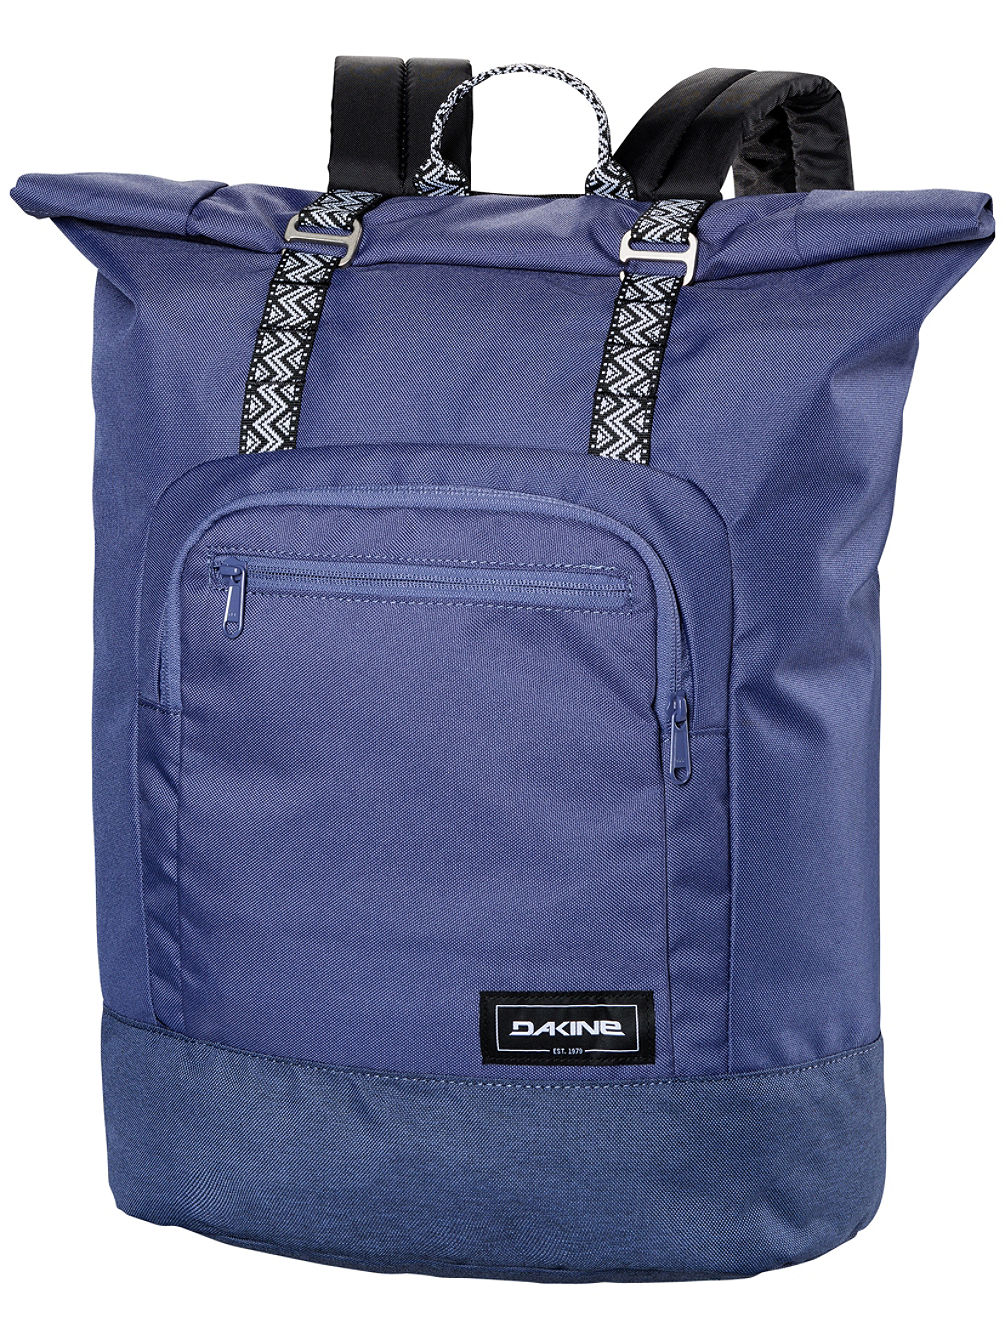 Milly 24L Backpack